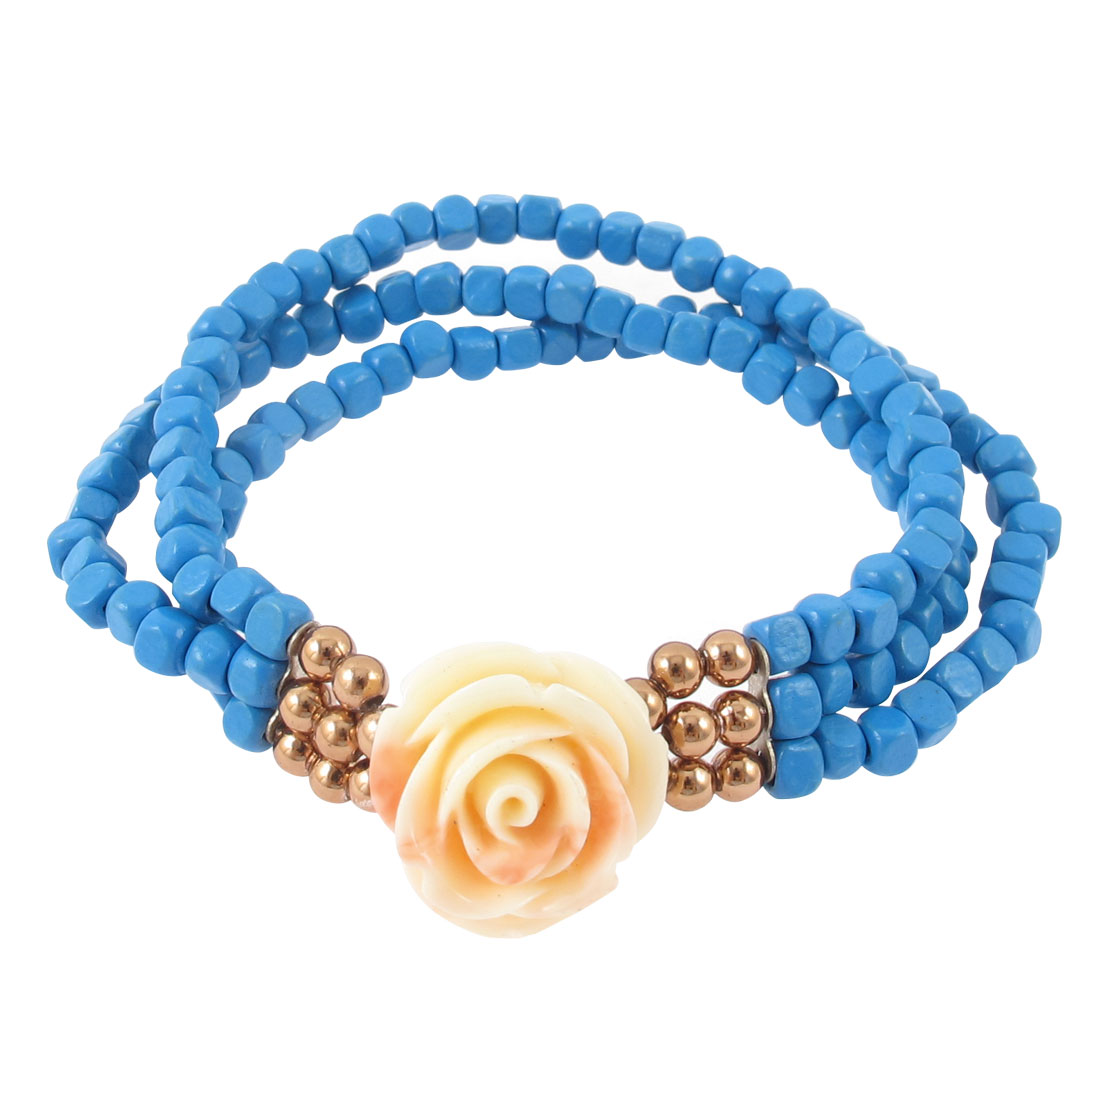 Flower Pendant Square Beads Detail 3 Layers Elastic Bracelet Jewelry Gift Blue